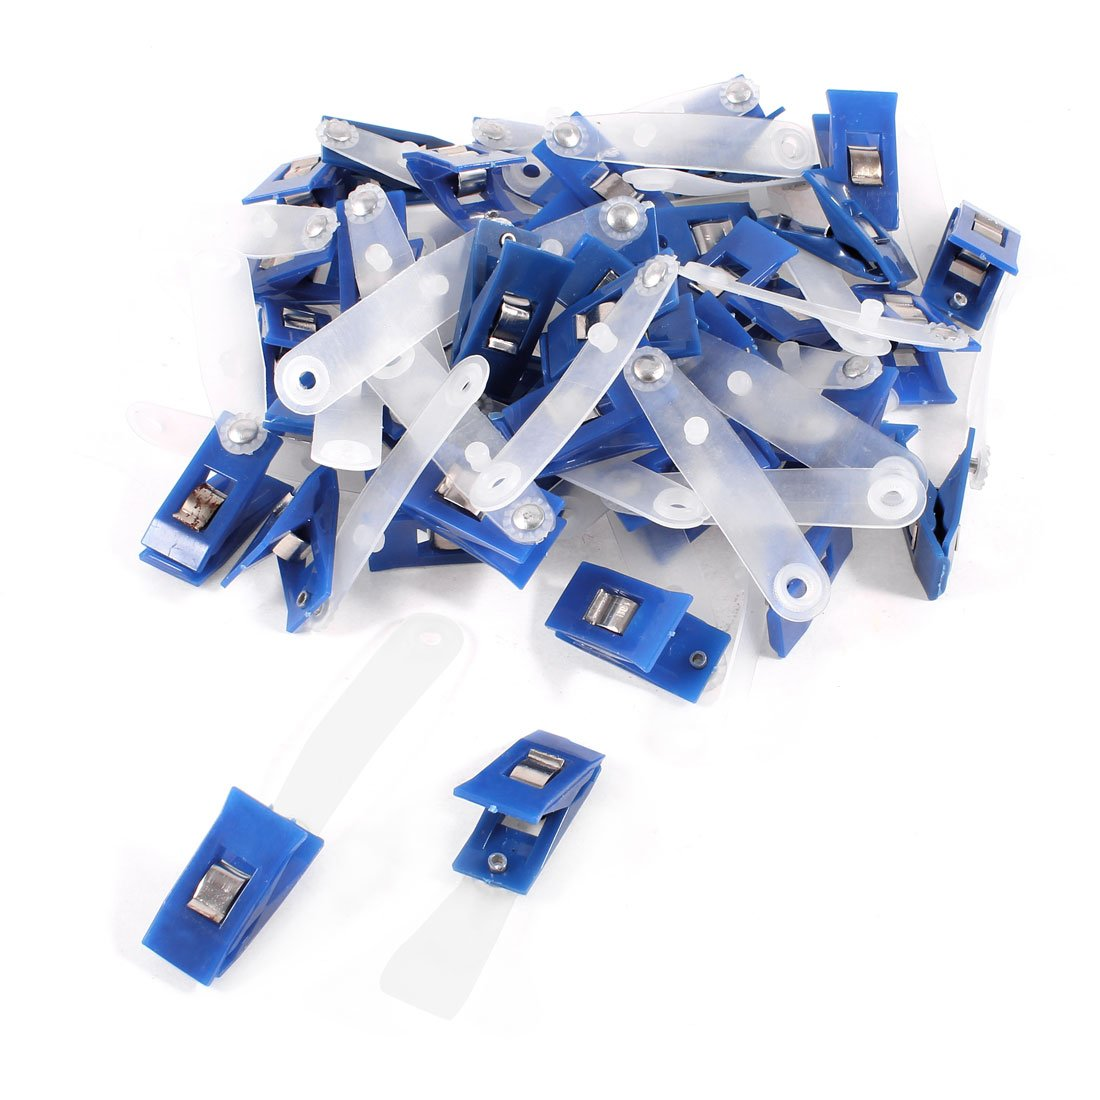 5PACK 40 Pcs Plastic ID Card Holder Name Badge Clips Fastener Blue nahoo retractable nurse badge holder name tag plastic badge real leather card holder vertical credit bus cards office supplies